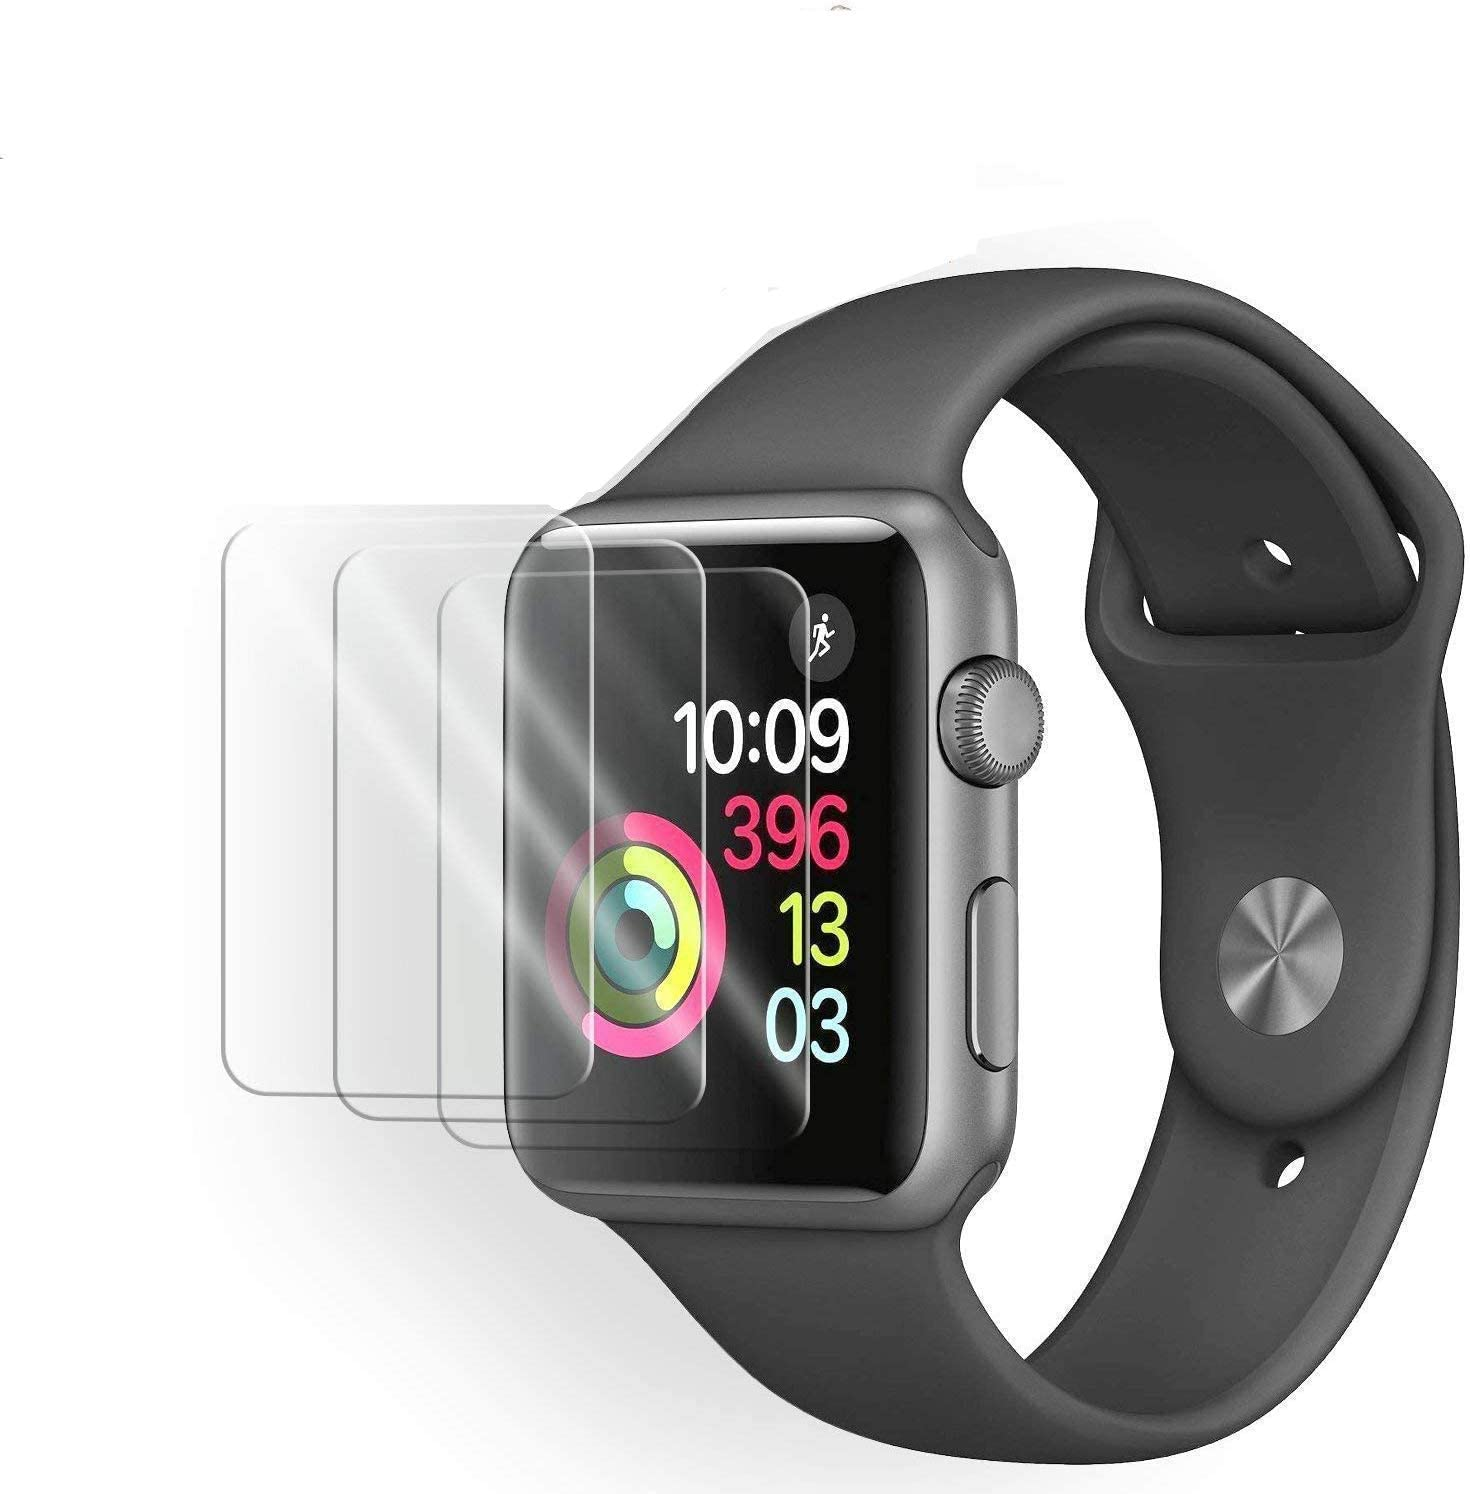 [3 Pack] Tempered Glass Screen Protector Compatible with Apple Watch Series 3/2 38mm, 3D Full Coverage Anti-Scratch Shatter-Proof HD Clear Waterproof Screen Protector Film